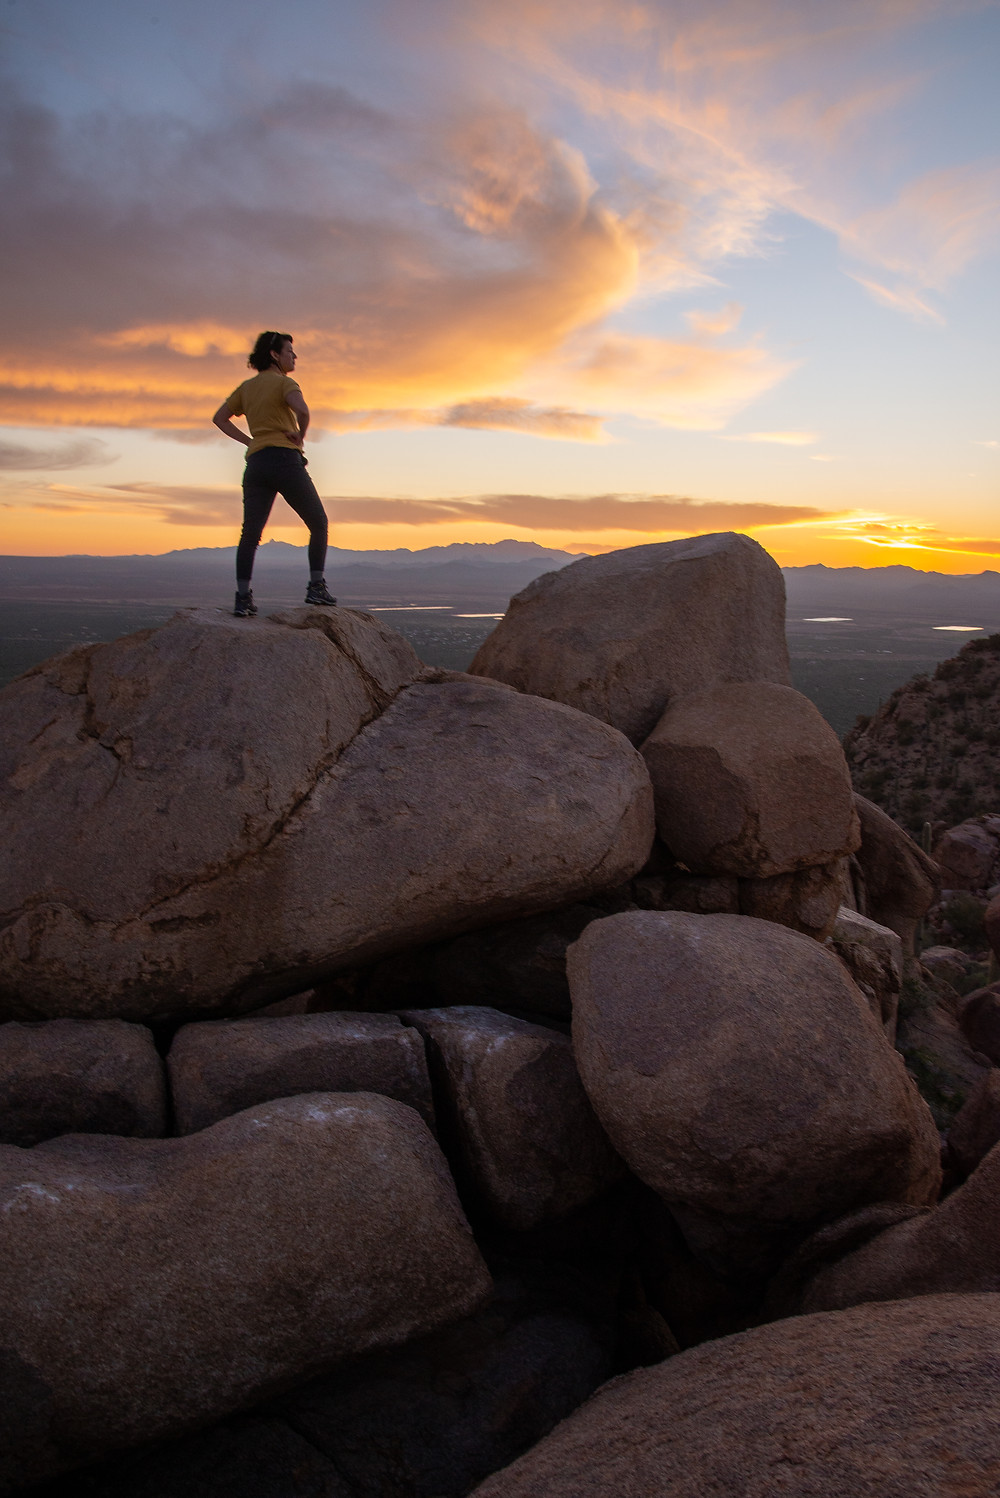 A hiker at sunset in Saguaro National Park in Arizona.